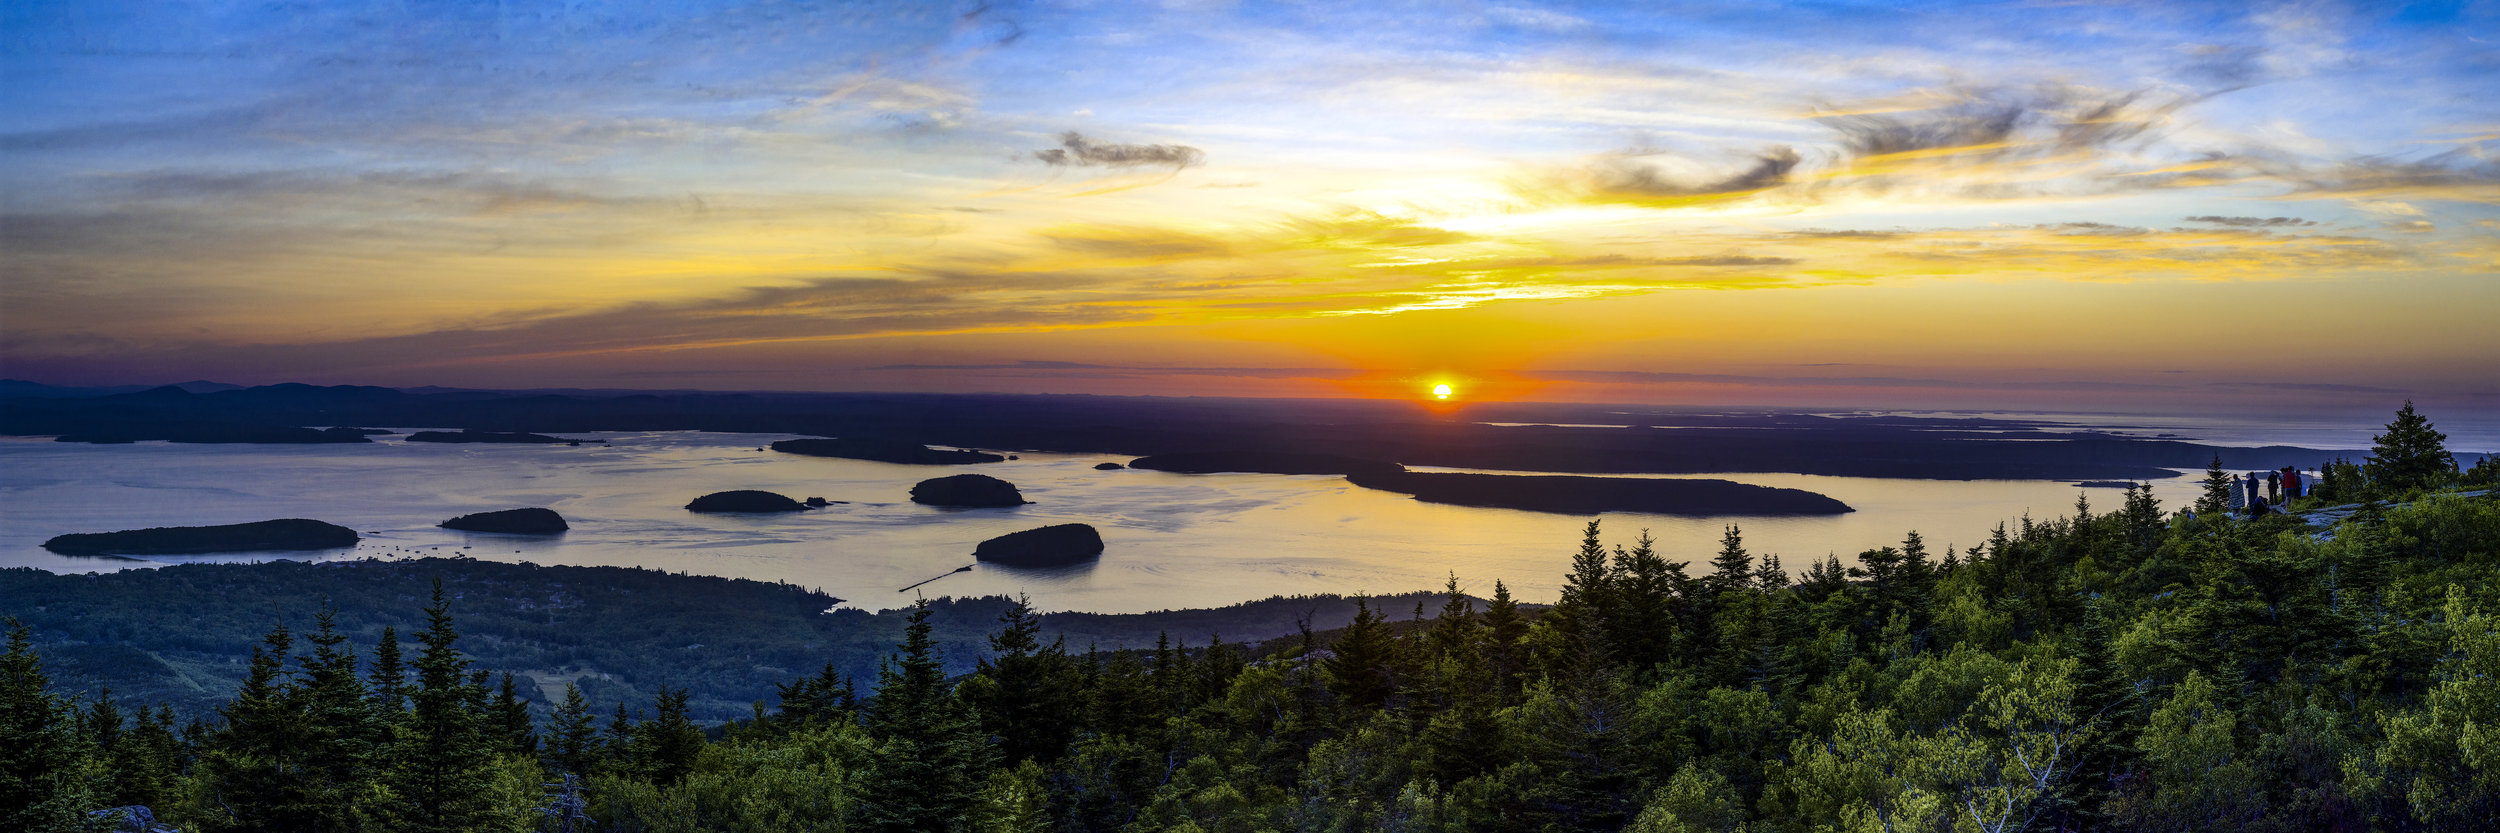 0113 - CADILLAC MOUNTAIN SUNRISE - FOLIO UPLOAD ACRYLIC.jpg